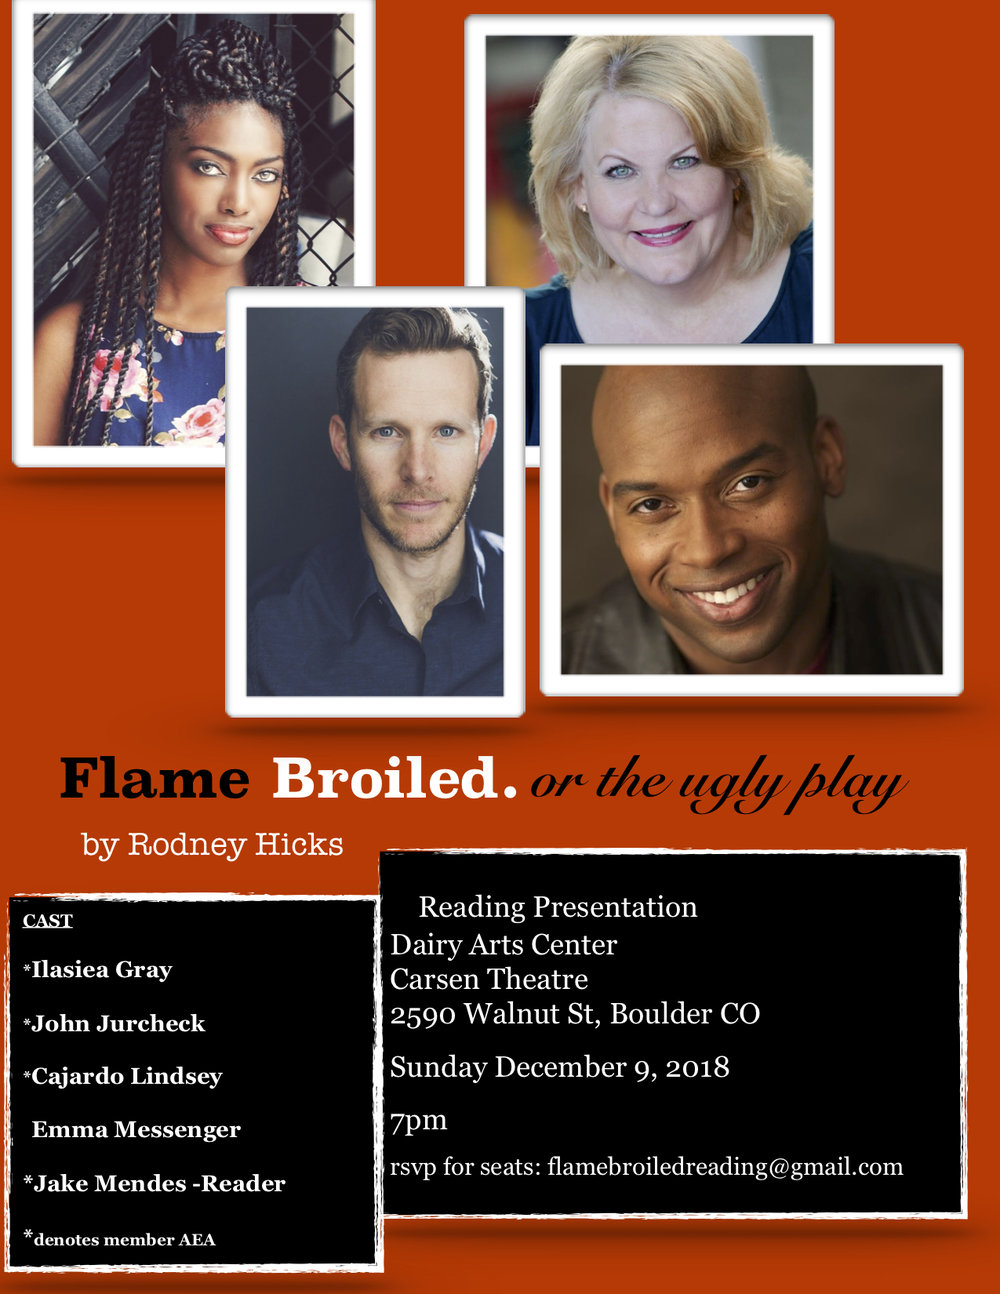 Flame Broiled cast promo.jpg